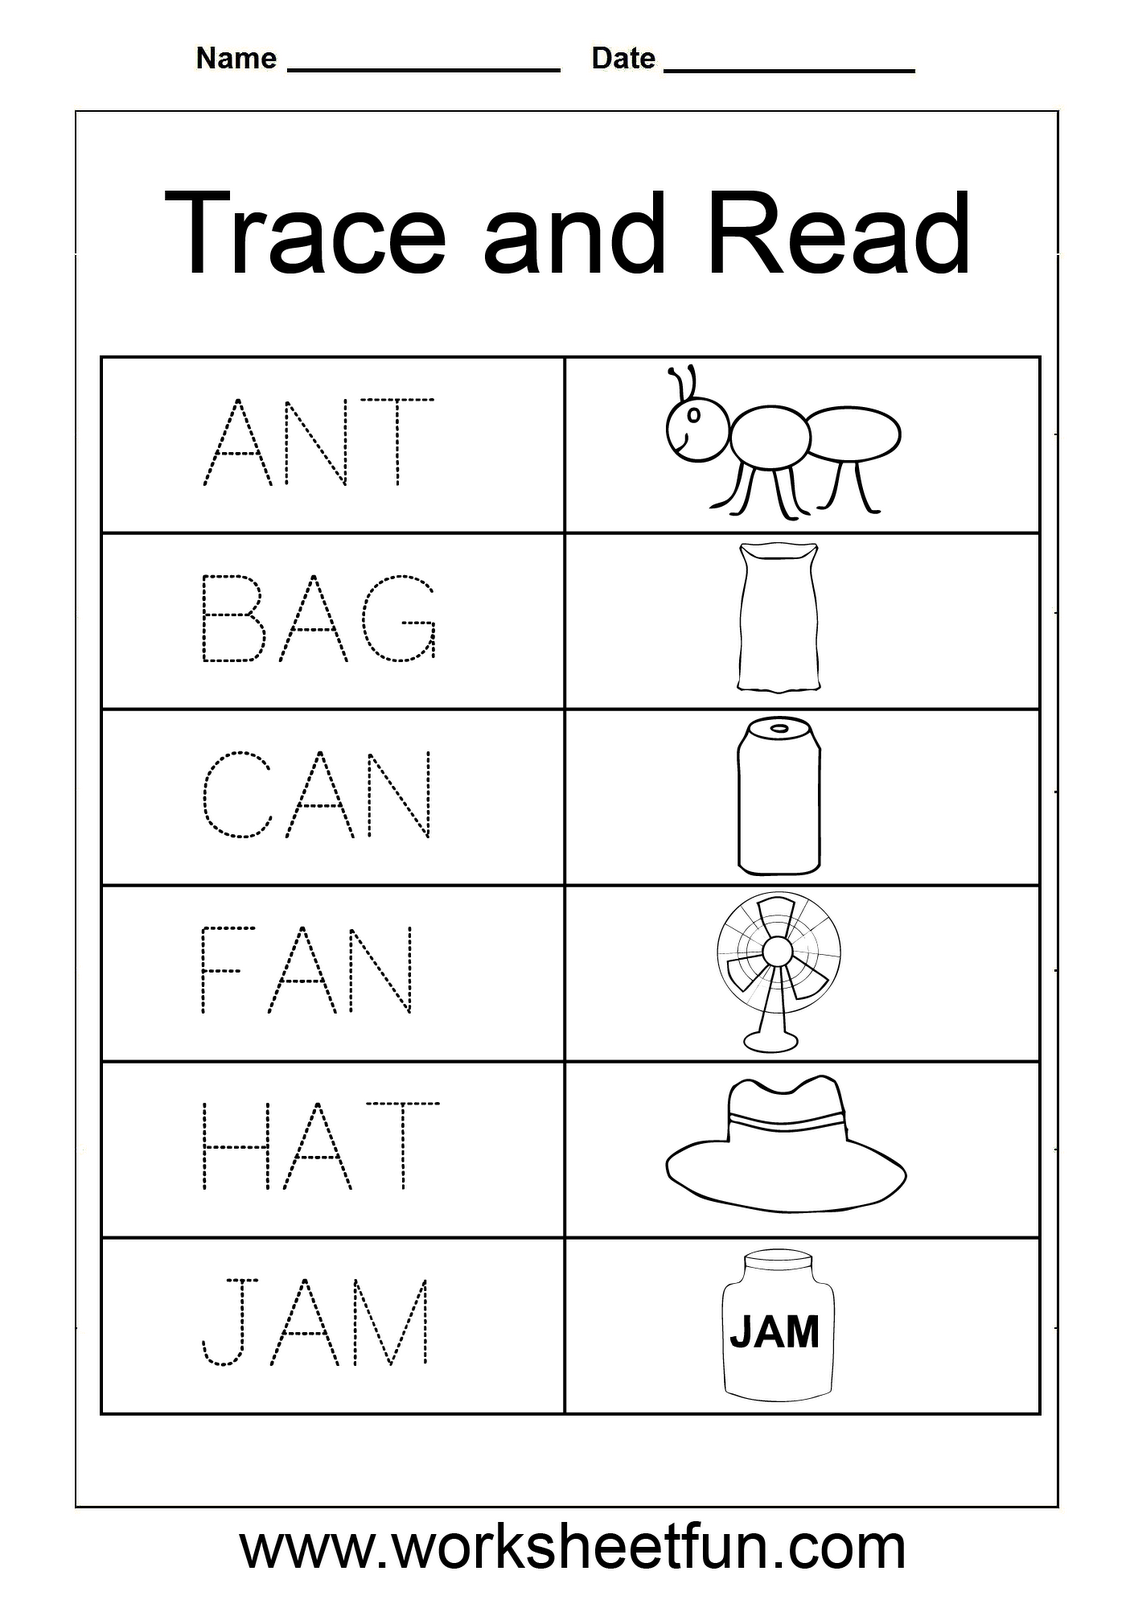 Trace And Read M Worksheet 1 With Images